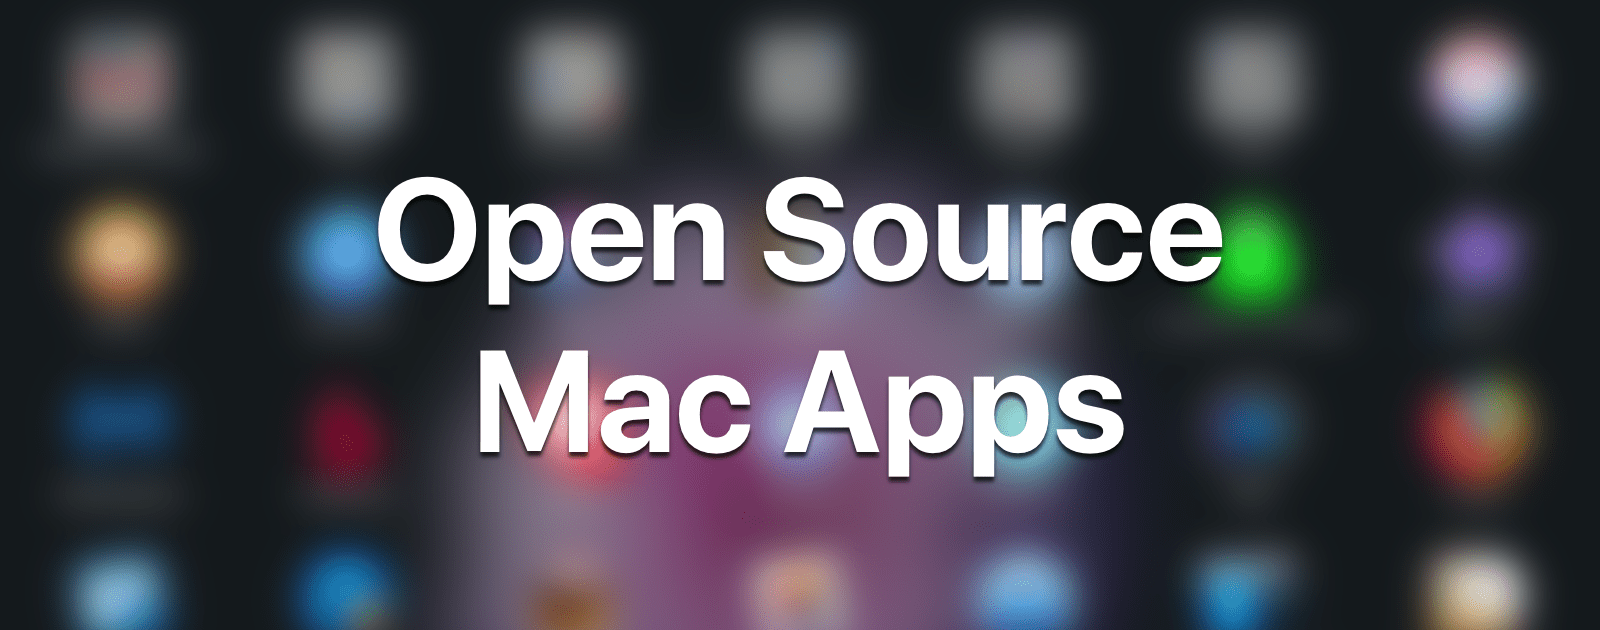 Github Has A Huge List Of Open Source Mac Apps The Mac